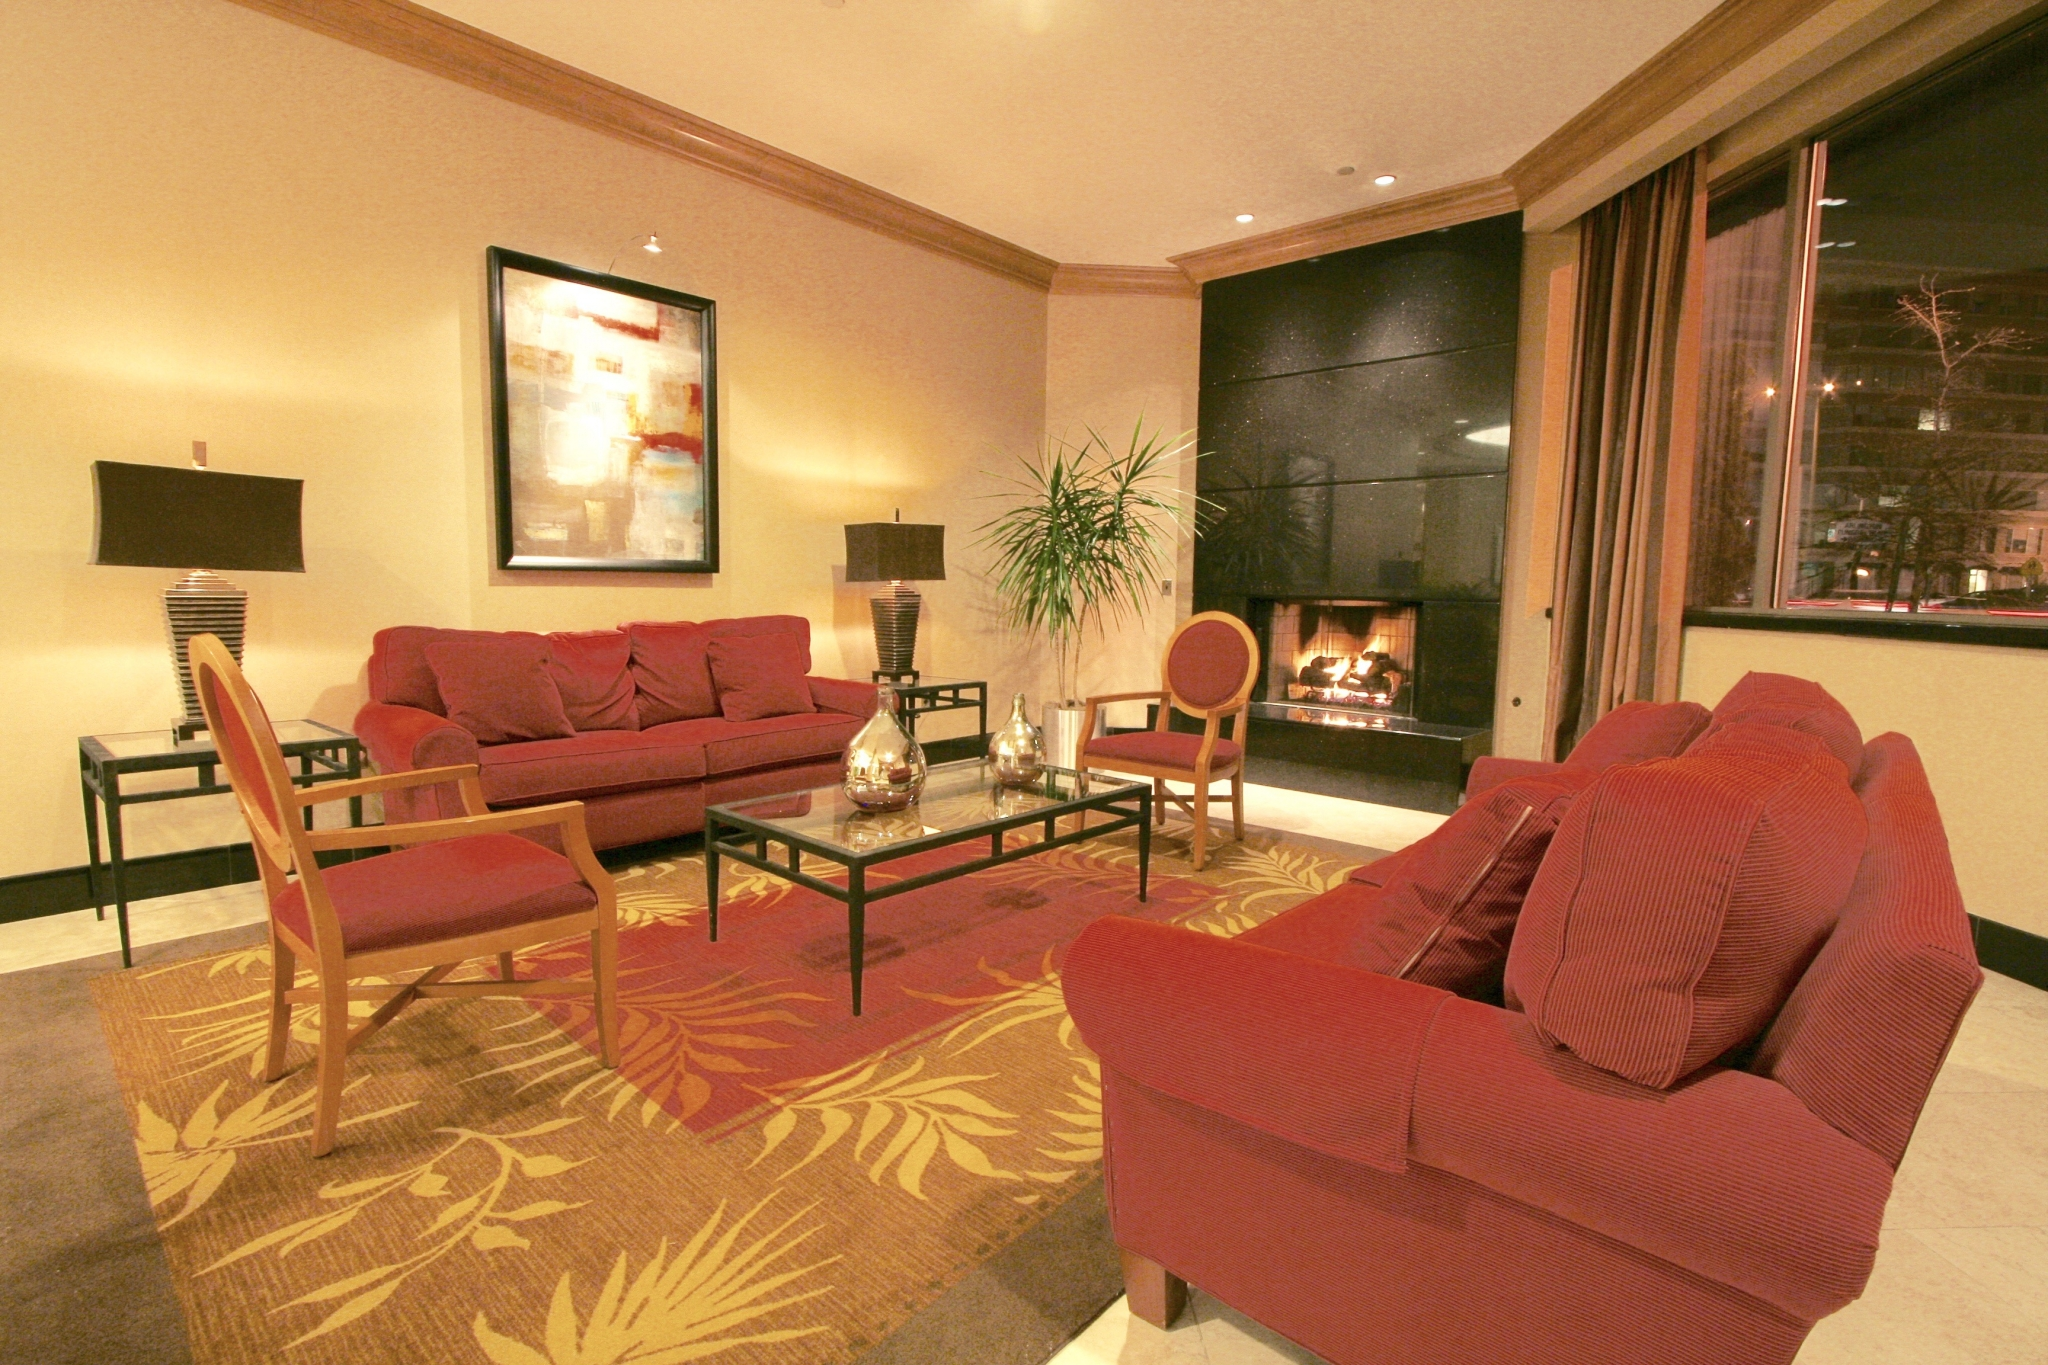 Residential Lounge with Fireplace | Quincy Plaza